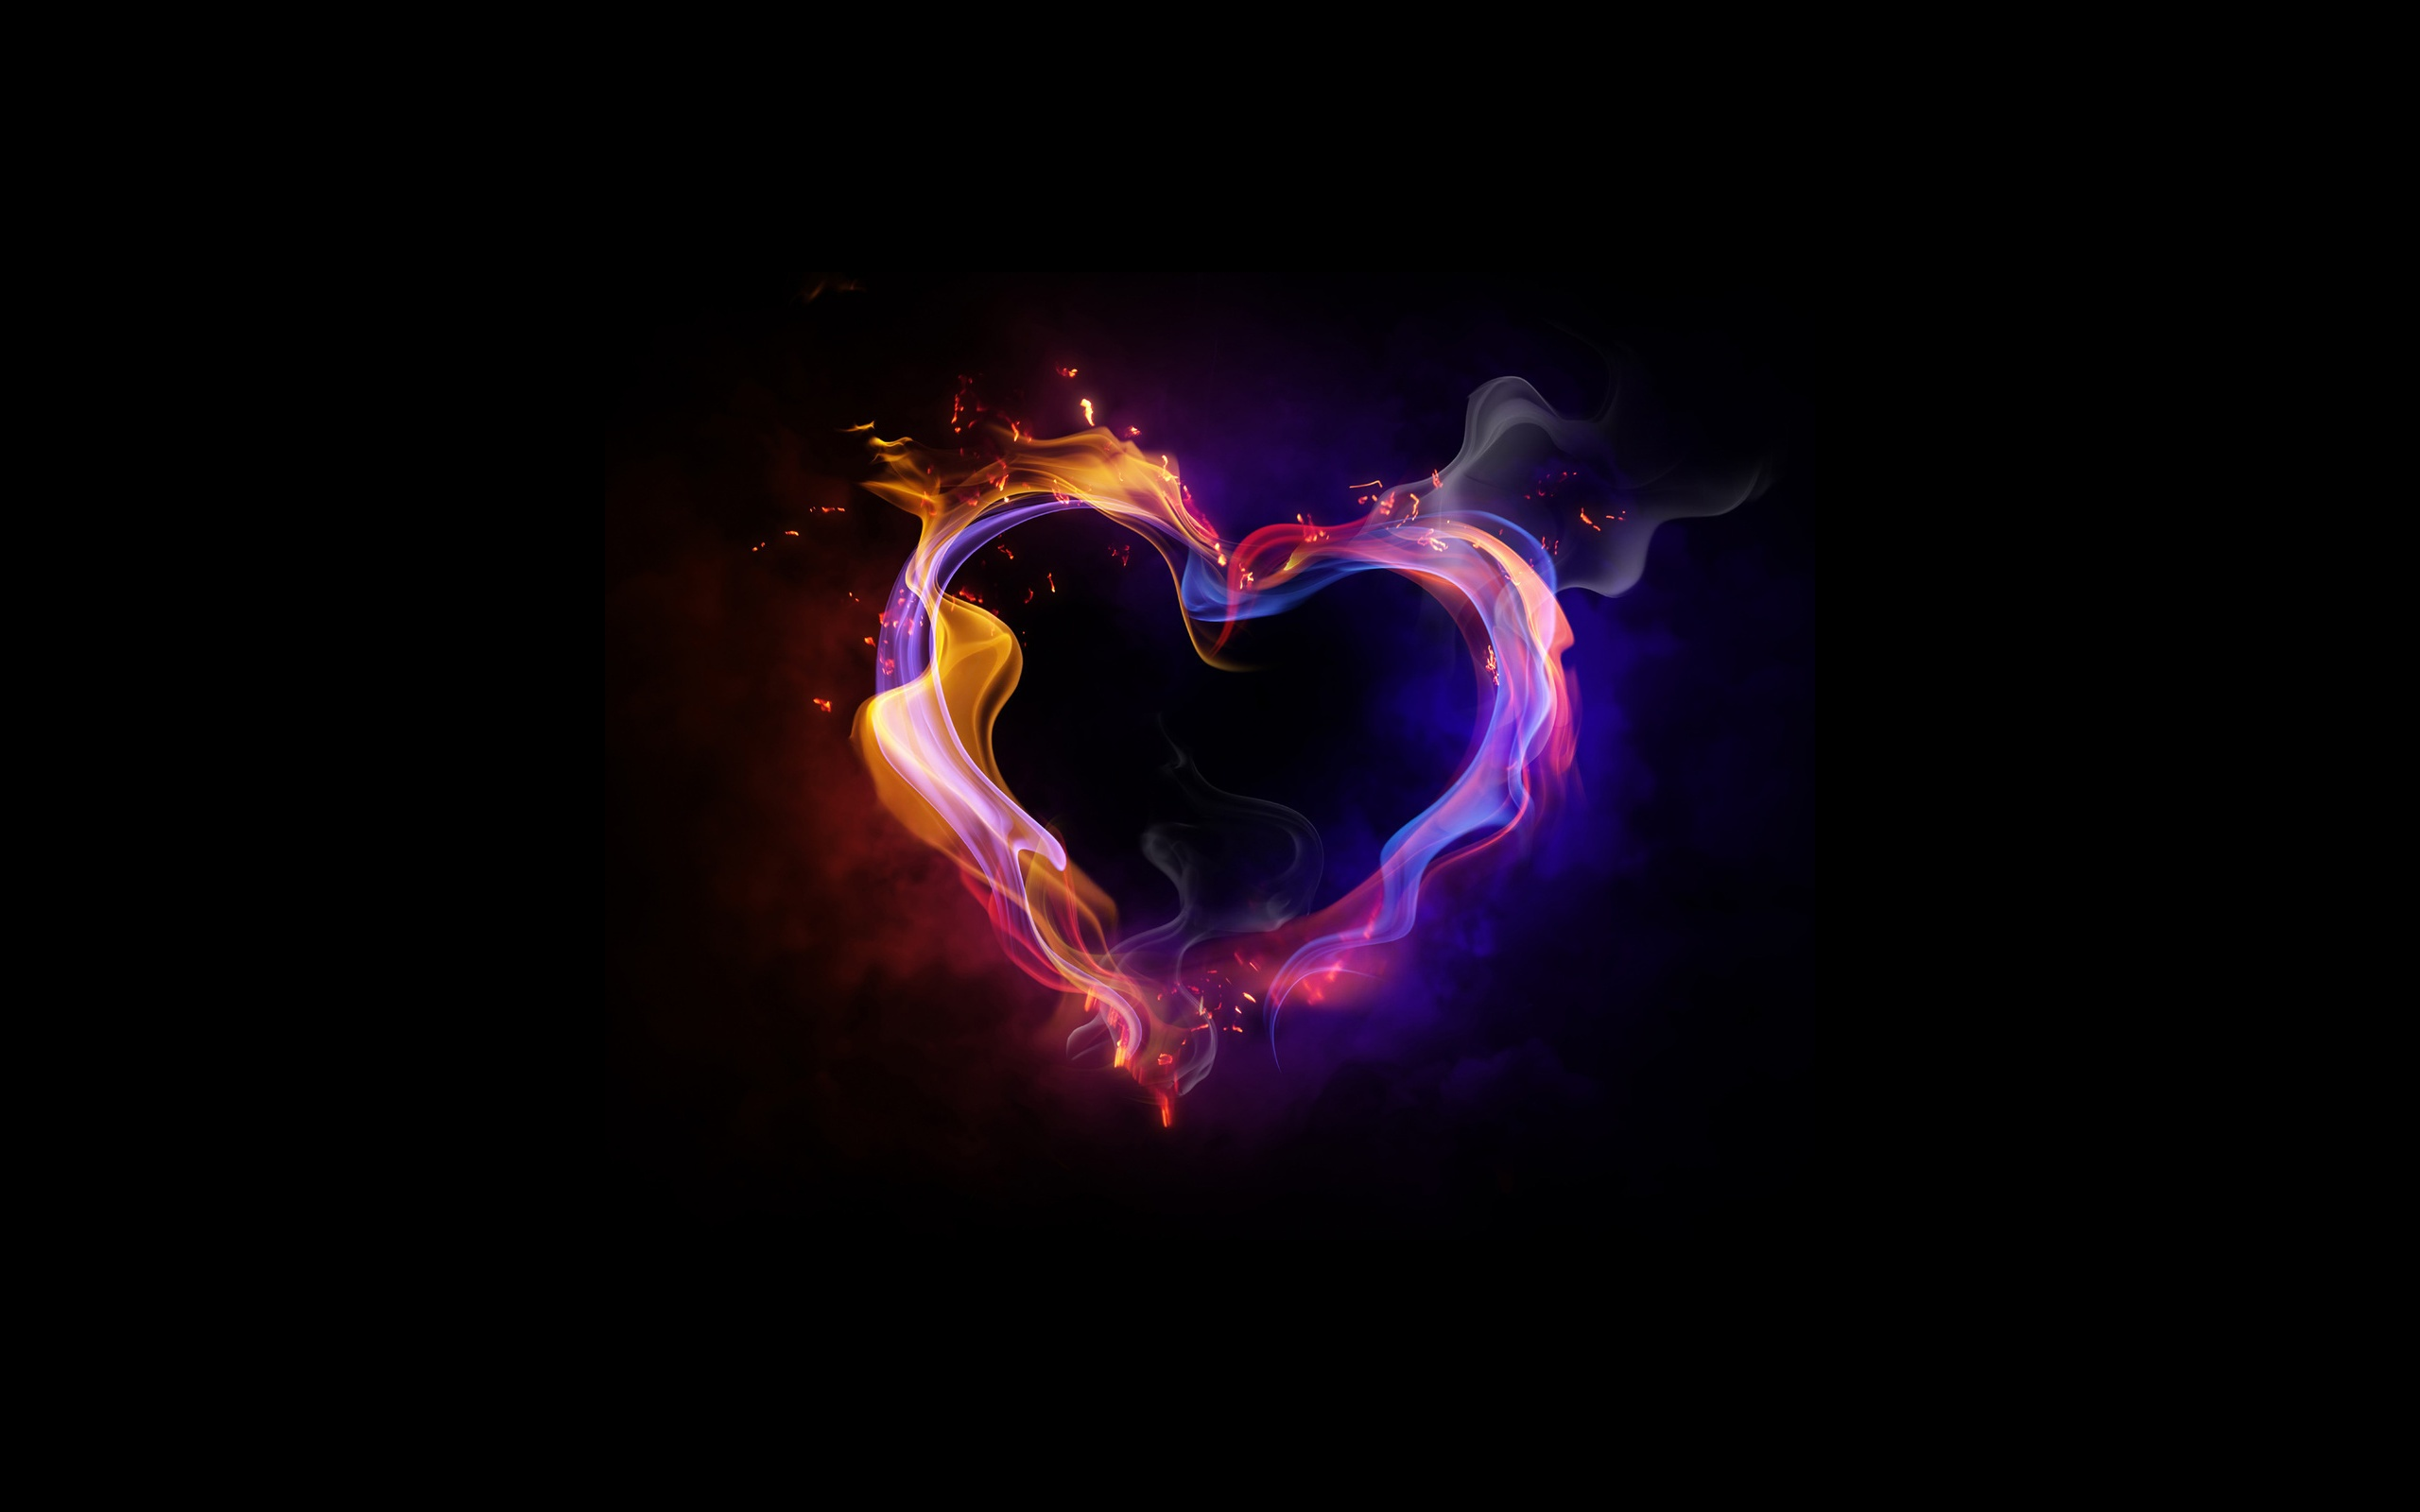 Fire Heart Wallpaper Background